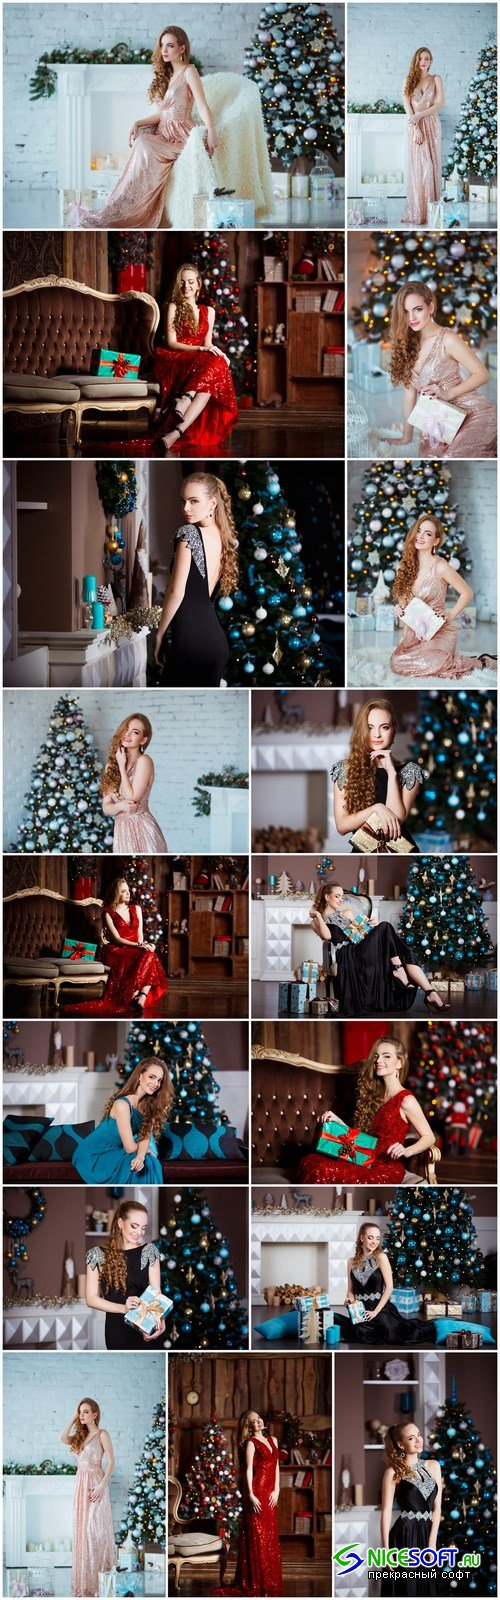 Young woman in elegant dress over christmas interior background 2 - 17xUHQ JPEG